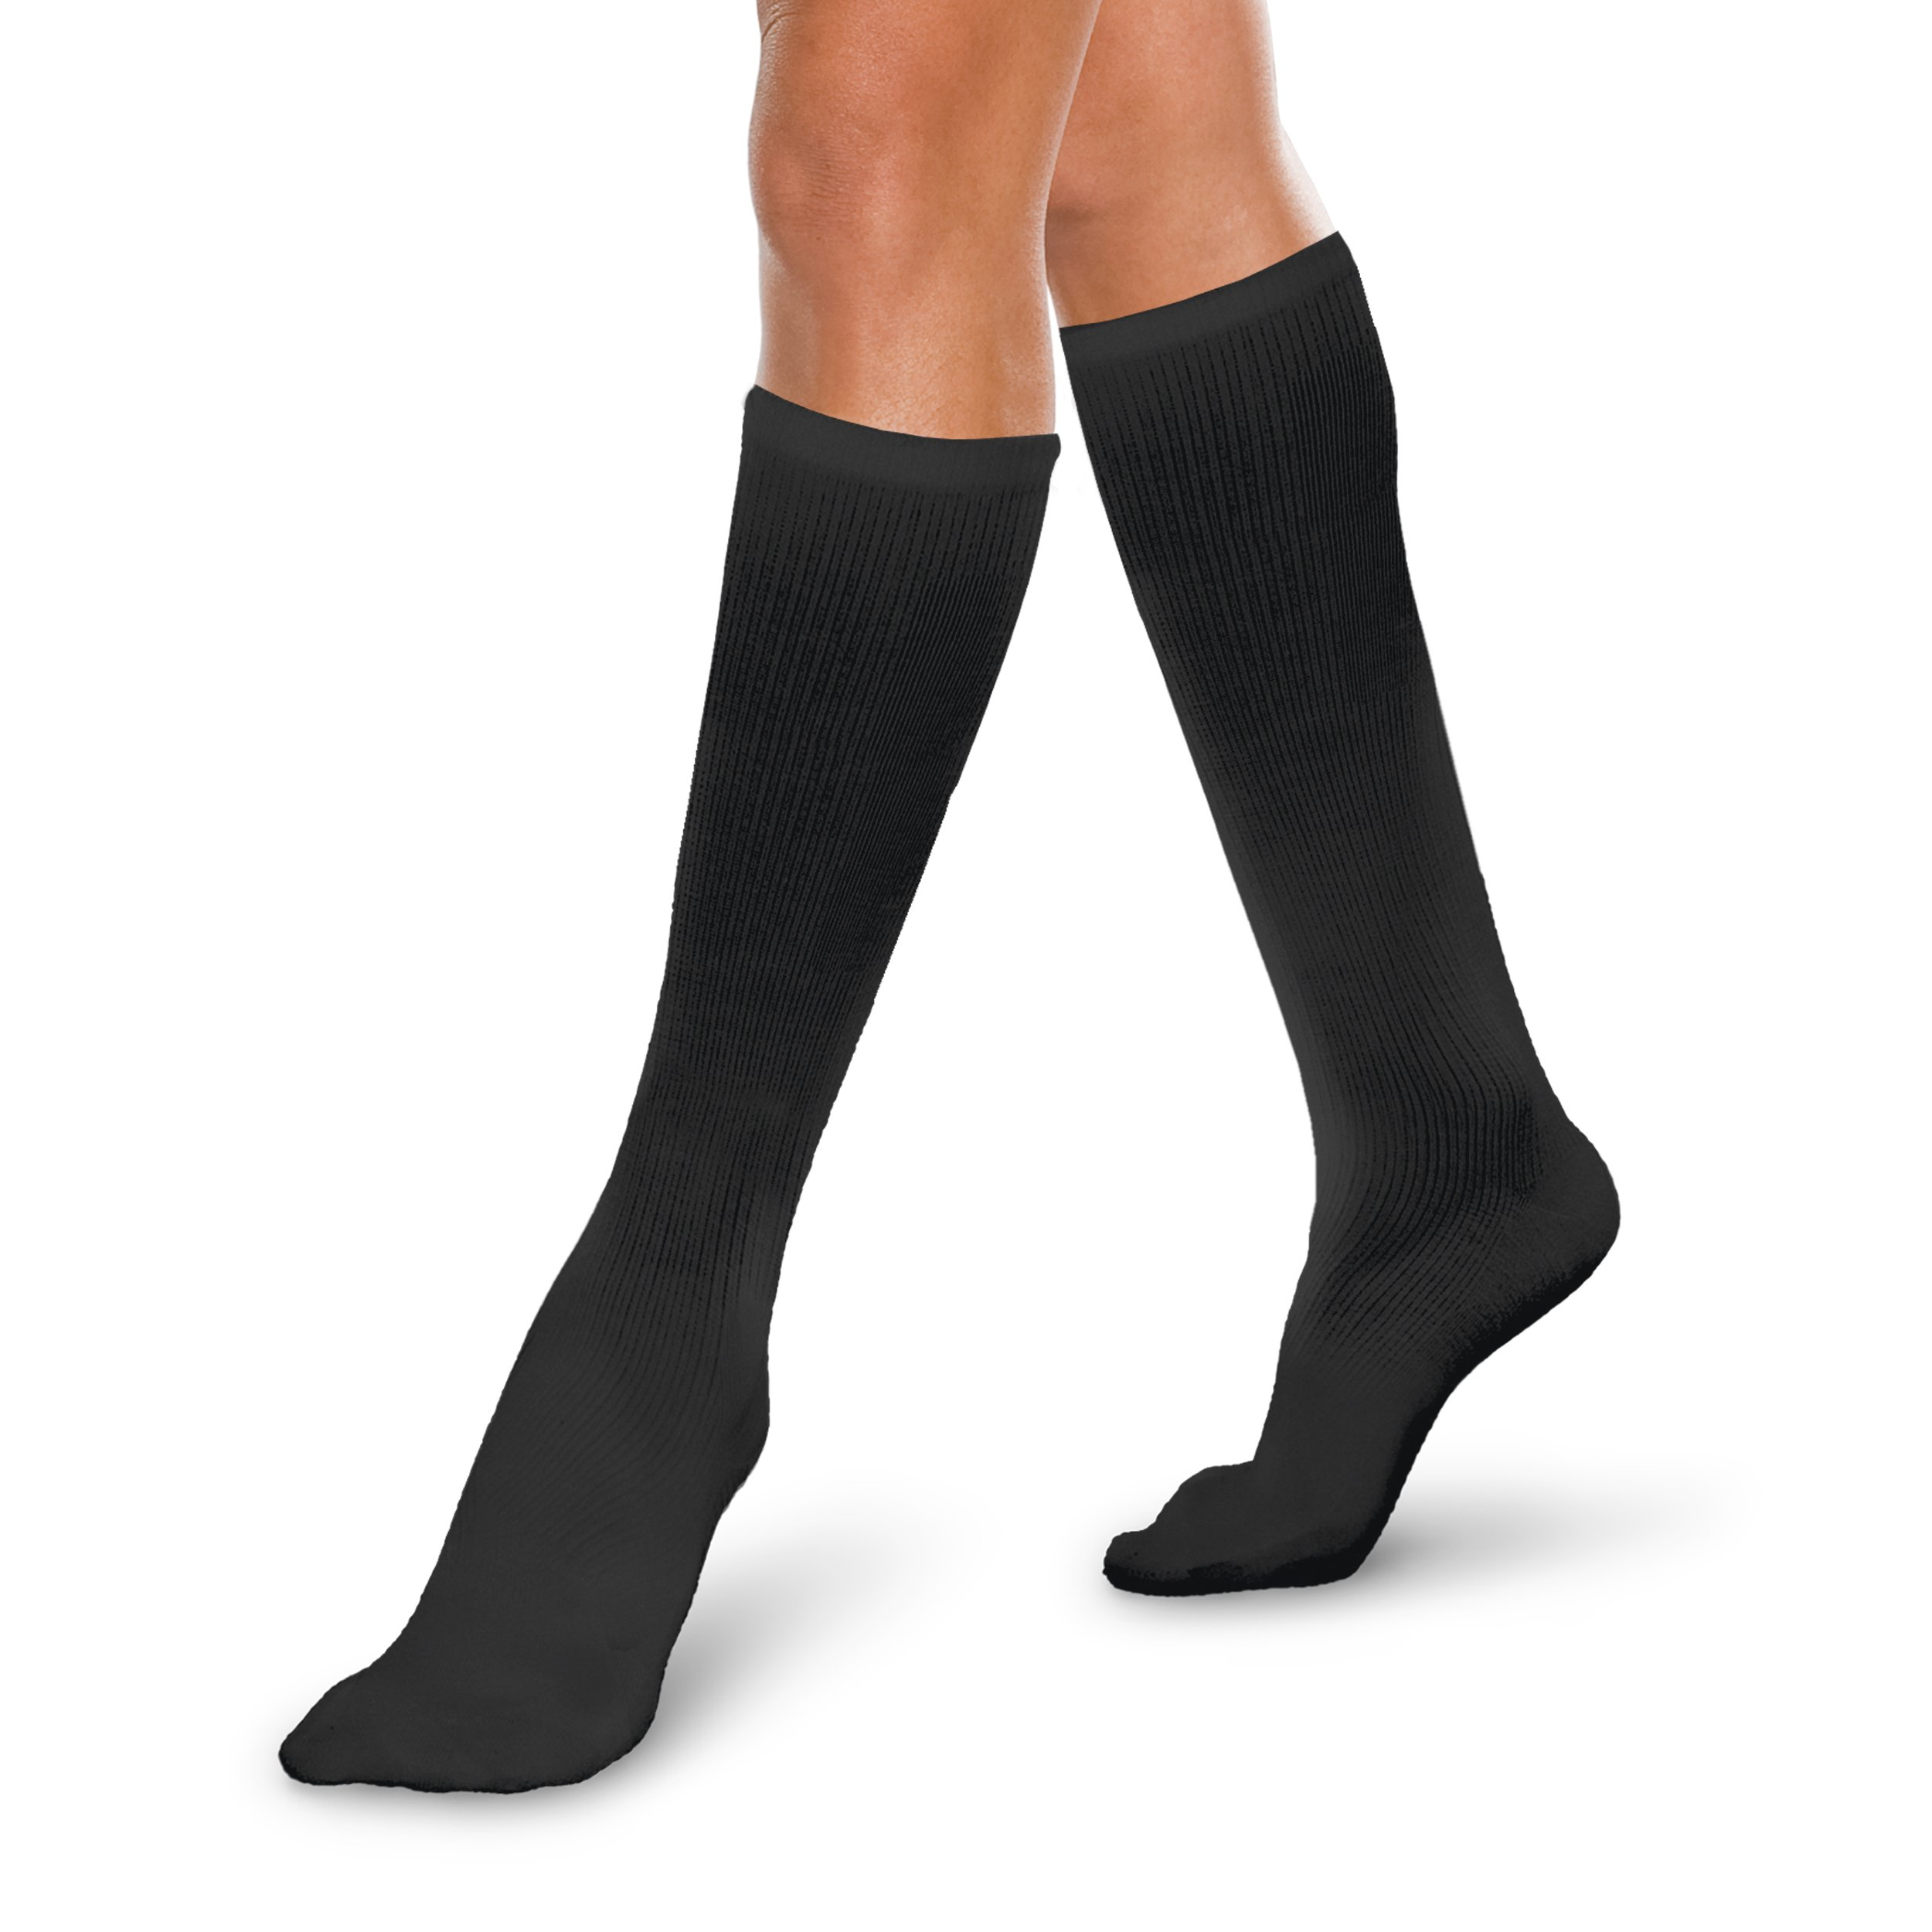 Core-Spun 20-30mmHg Moderate Graduated Compression Support Knee High Socks (Black, Small) by CORE-SPUN BY THERAFIRM